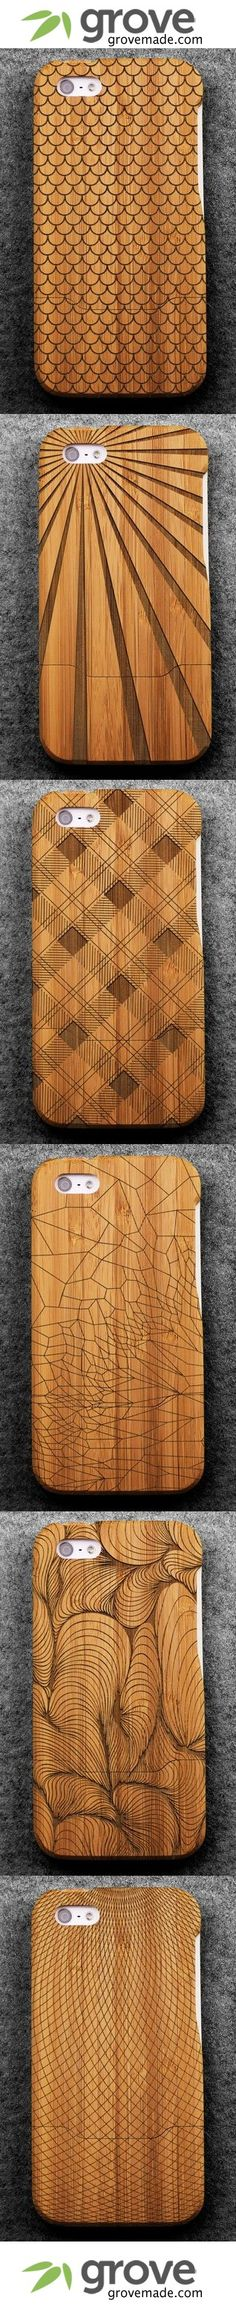 Engraved Bamboo wooden iPhone case, I don't have an iPhone but these are still pretty sweet